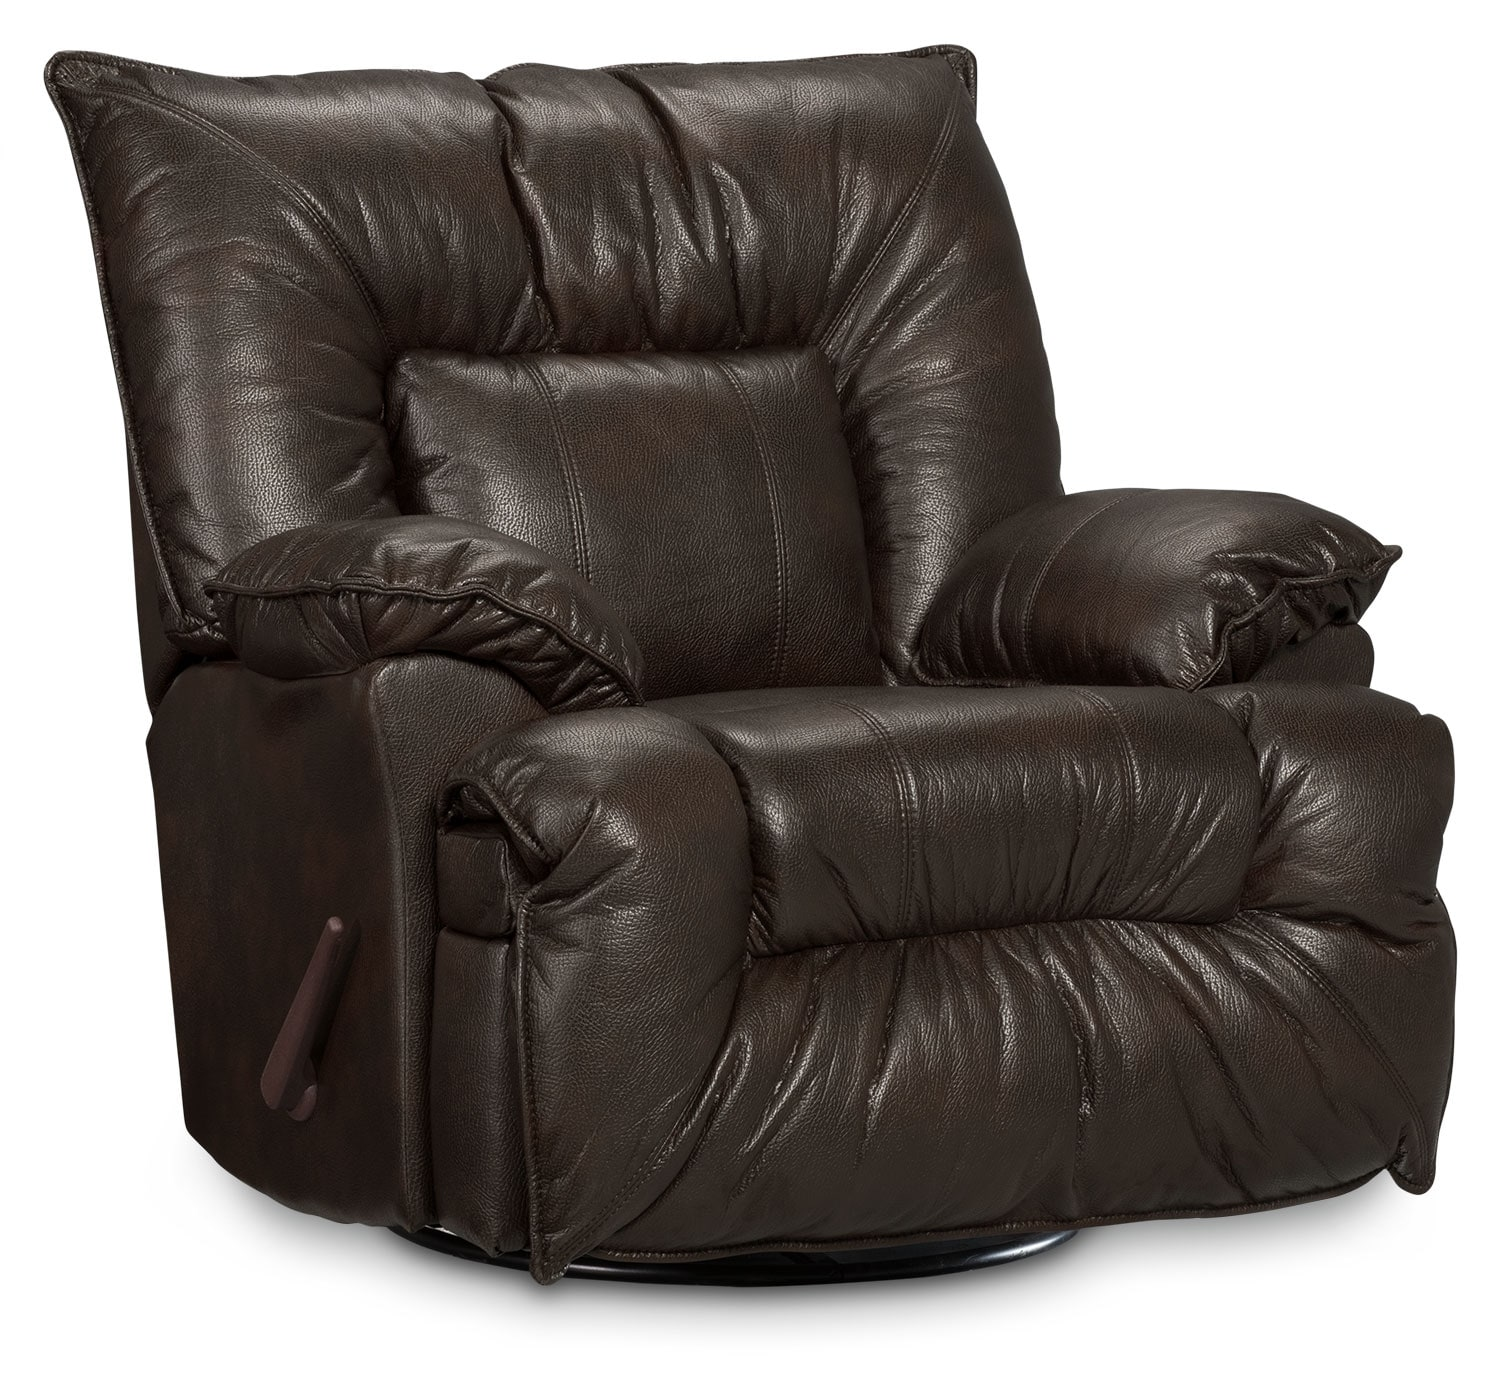 Designed2B Recliner 7726 Leather-Look Fabric Swivel Glider Chair - Chocolate